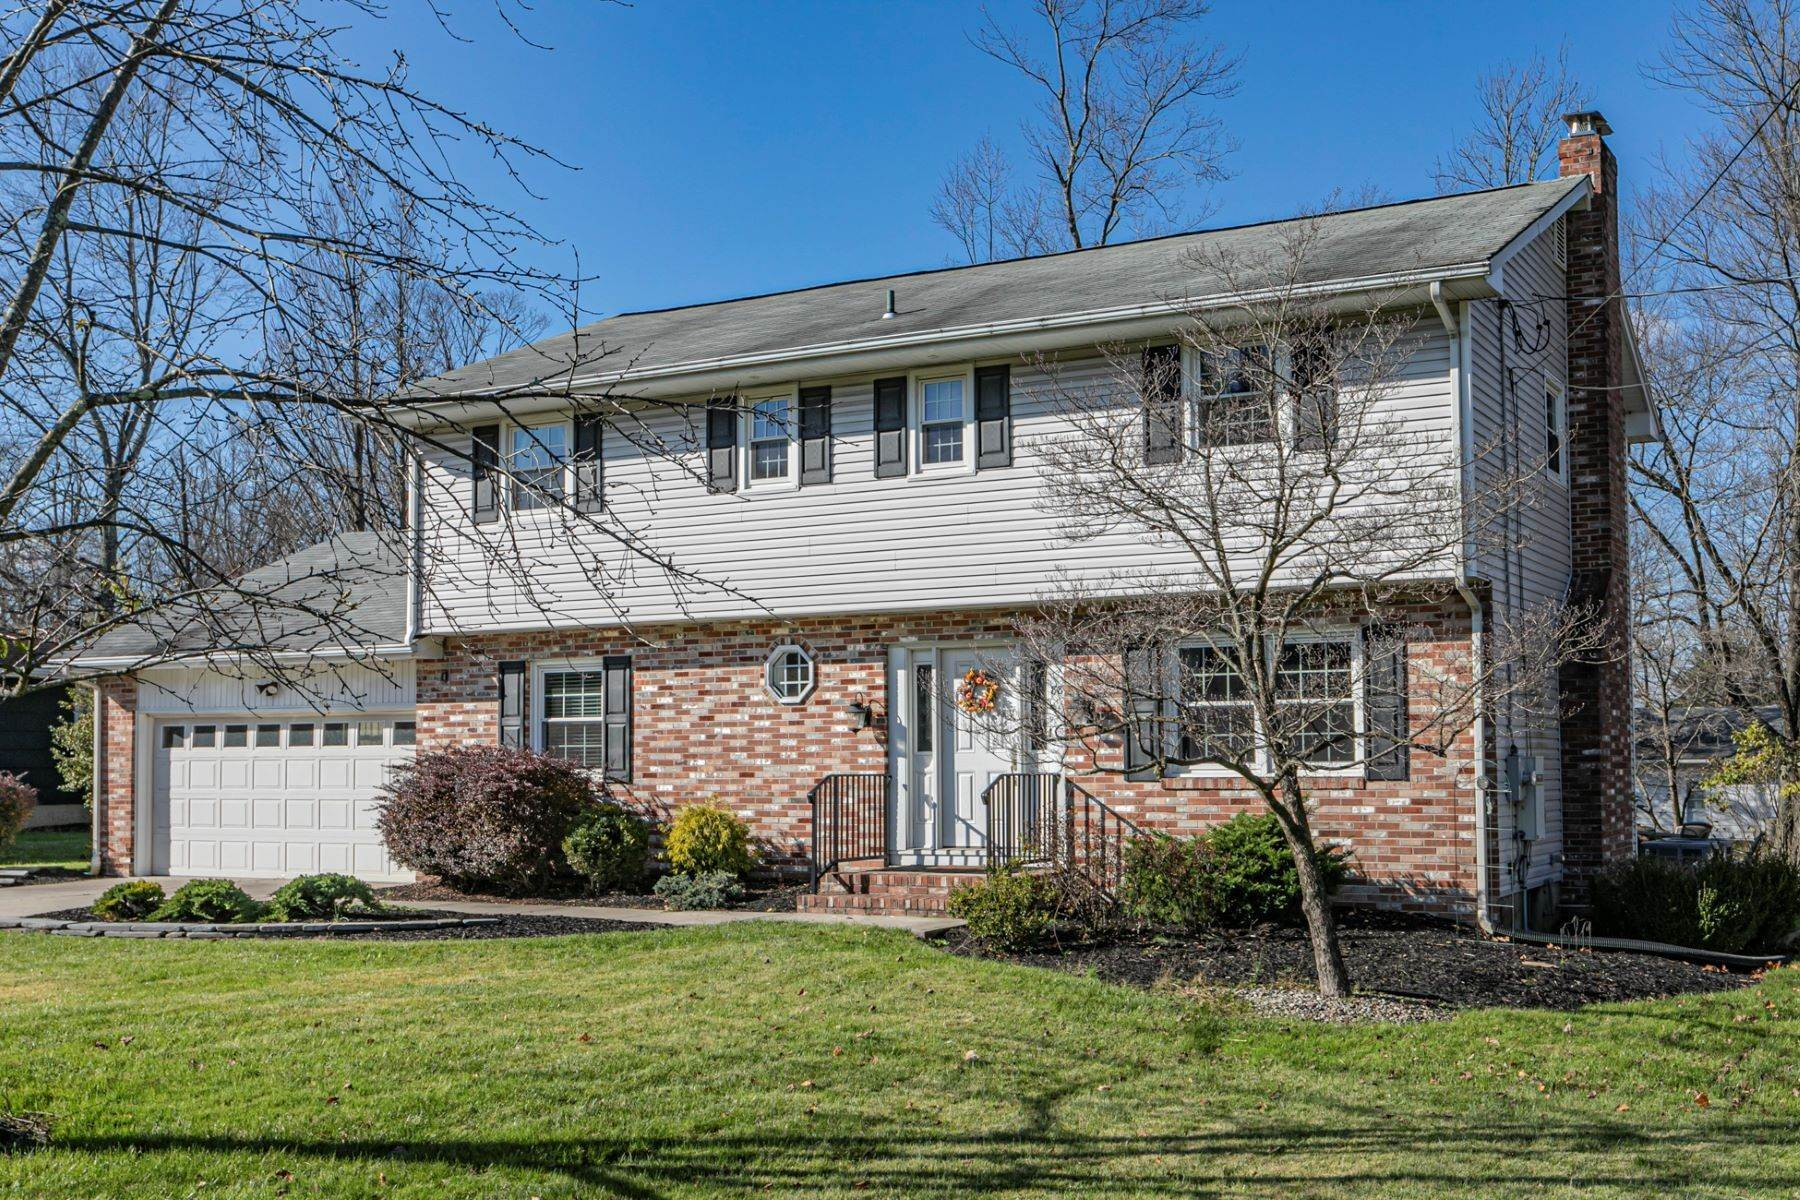 Single Family Homes -de Pristine and Stylish, with Sunshine for Days 88 Mountainview Road, Ewing, New Jersey 08628 Amerika Birleşik Devletleri